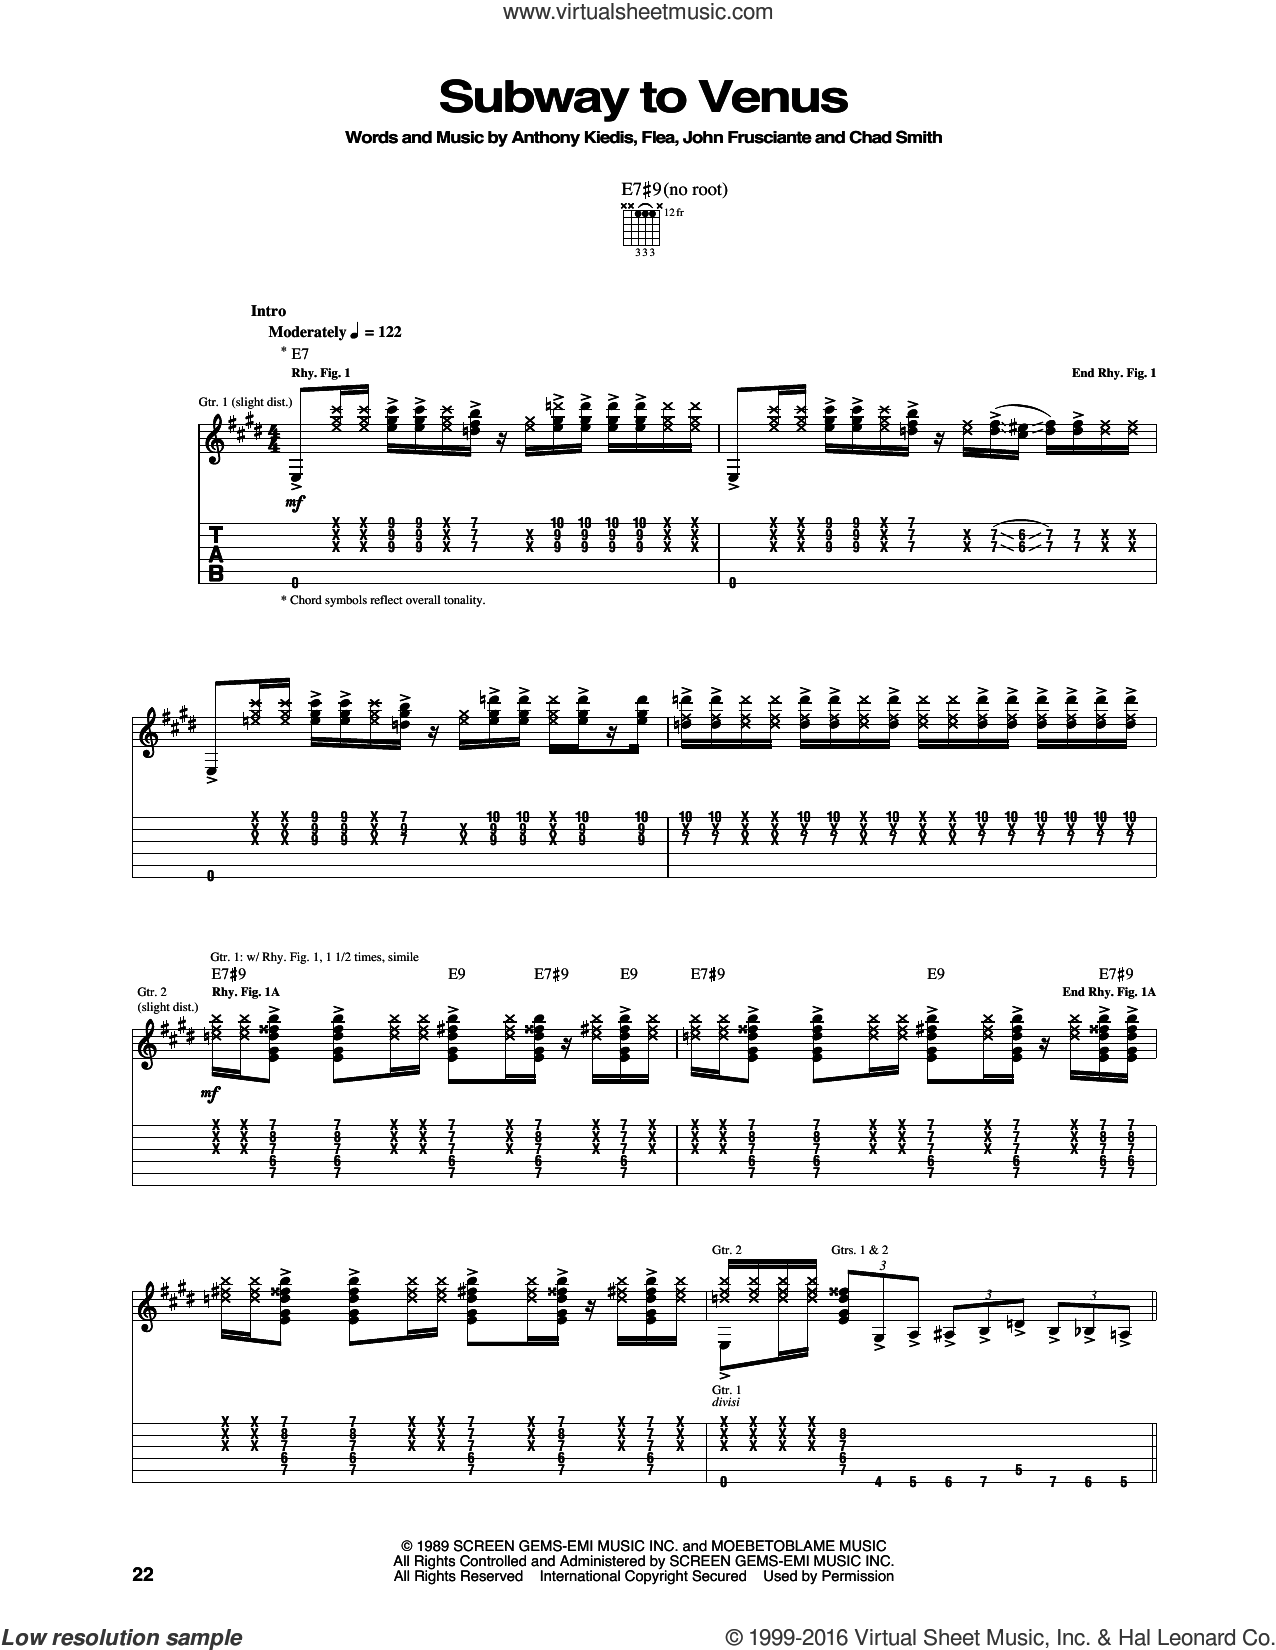 Subway To Venus sheet music for guitar (tablature) by John Frusciante, Red Hot Chili Peppers and Flea. Score Image Preview.